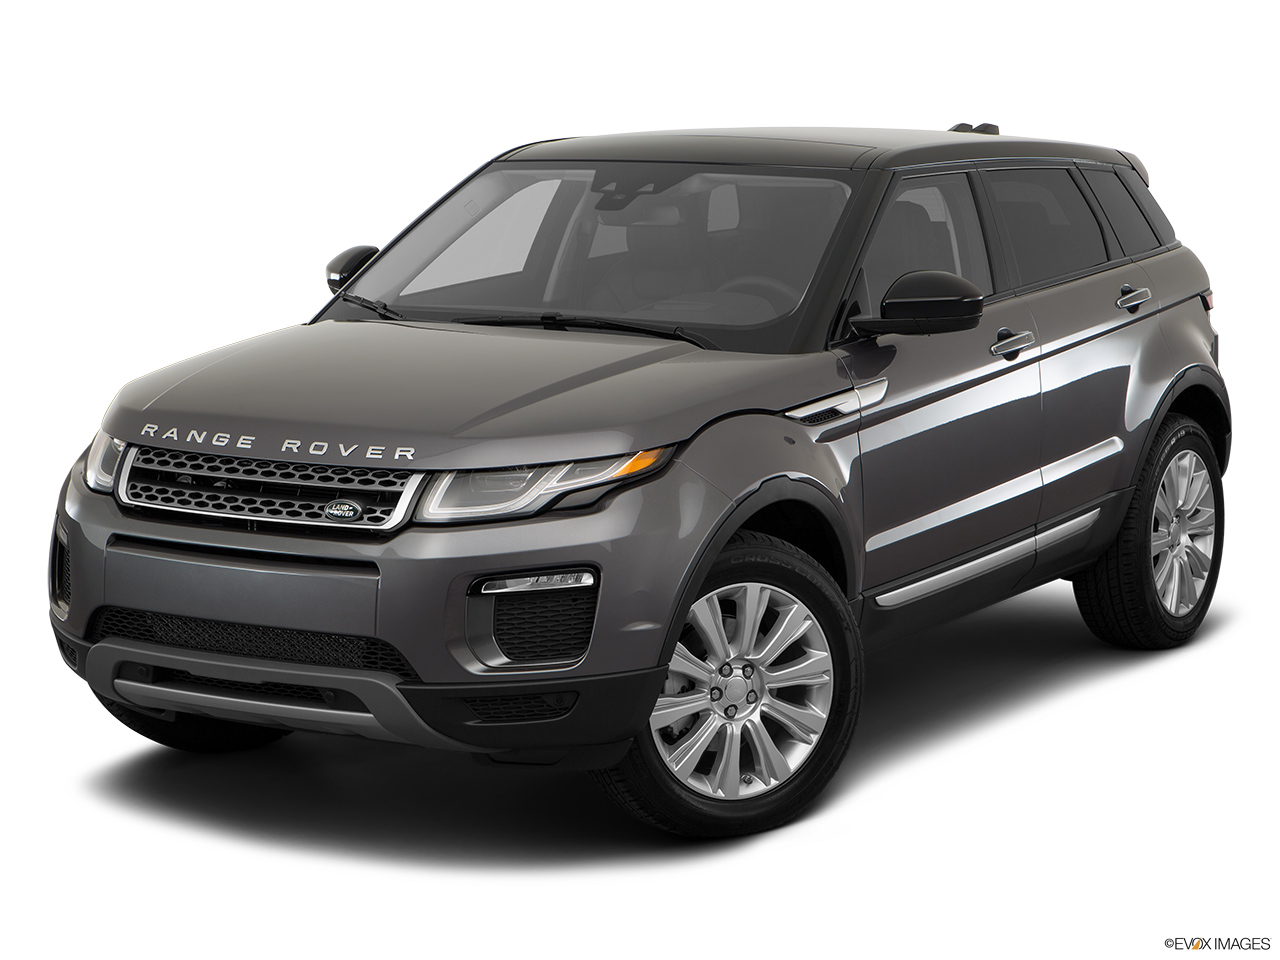 land rover range rover evoque price in uae new land rover range rover evoque photos and specs. Black Bedroom Furniture Sets. Home Design Ideas